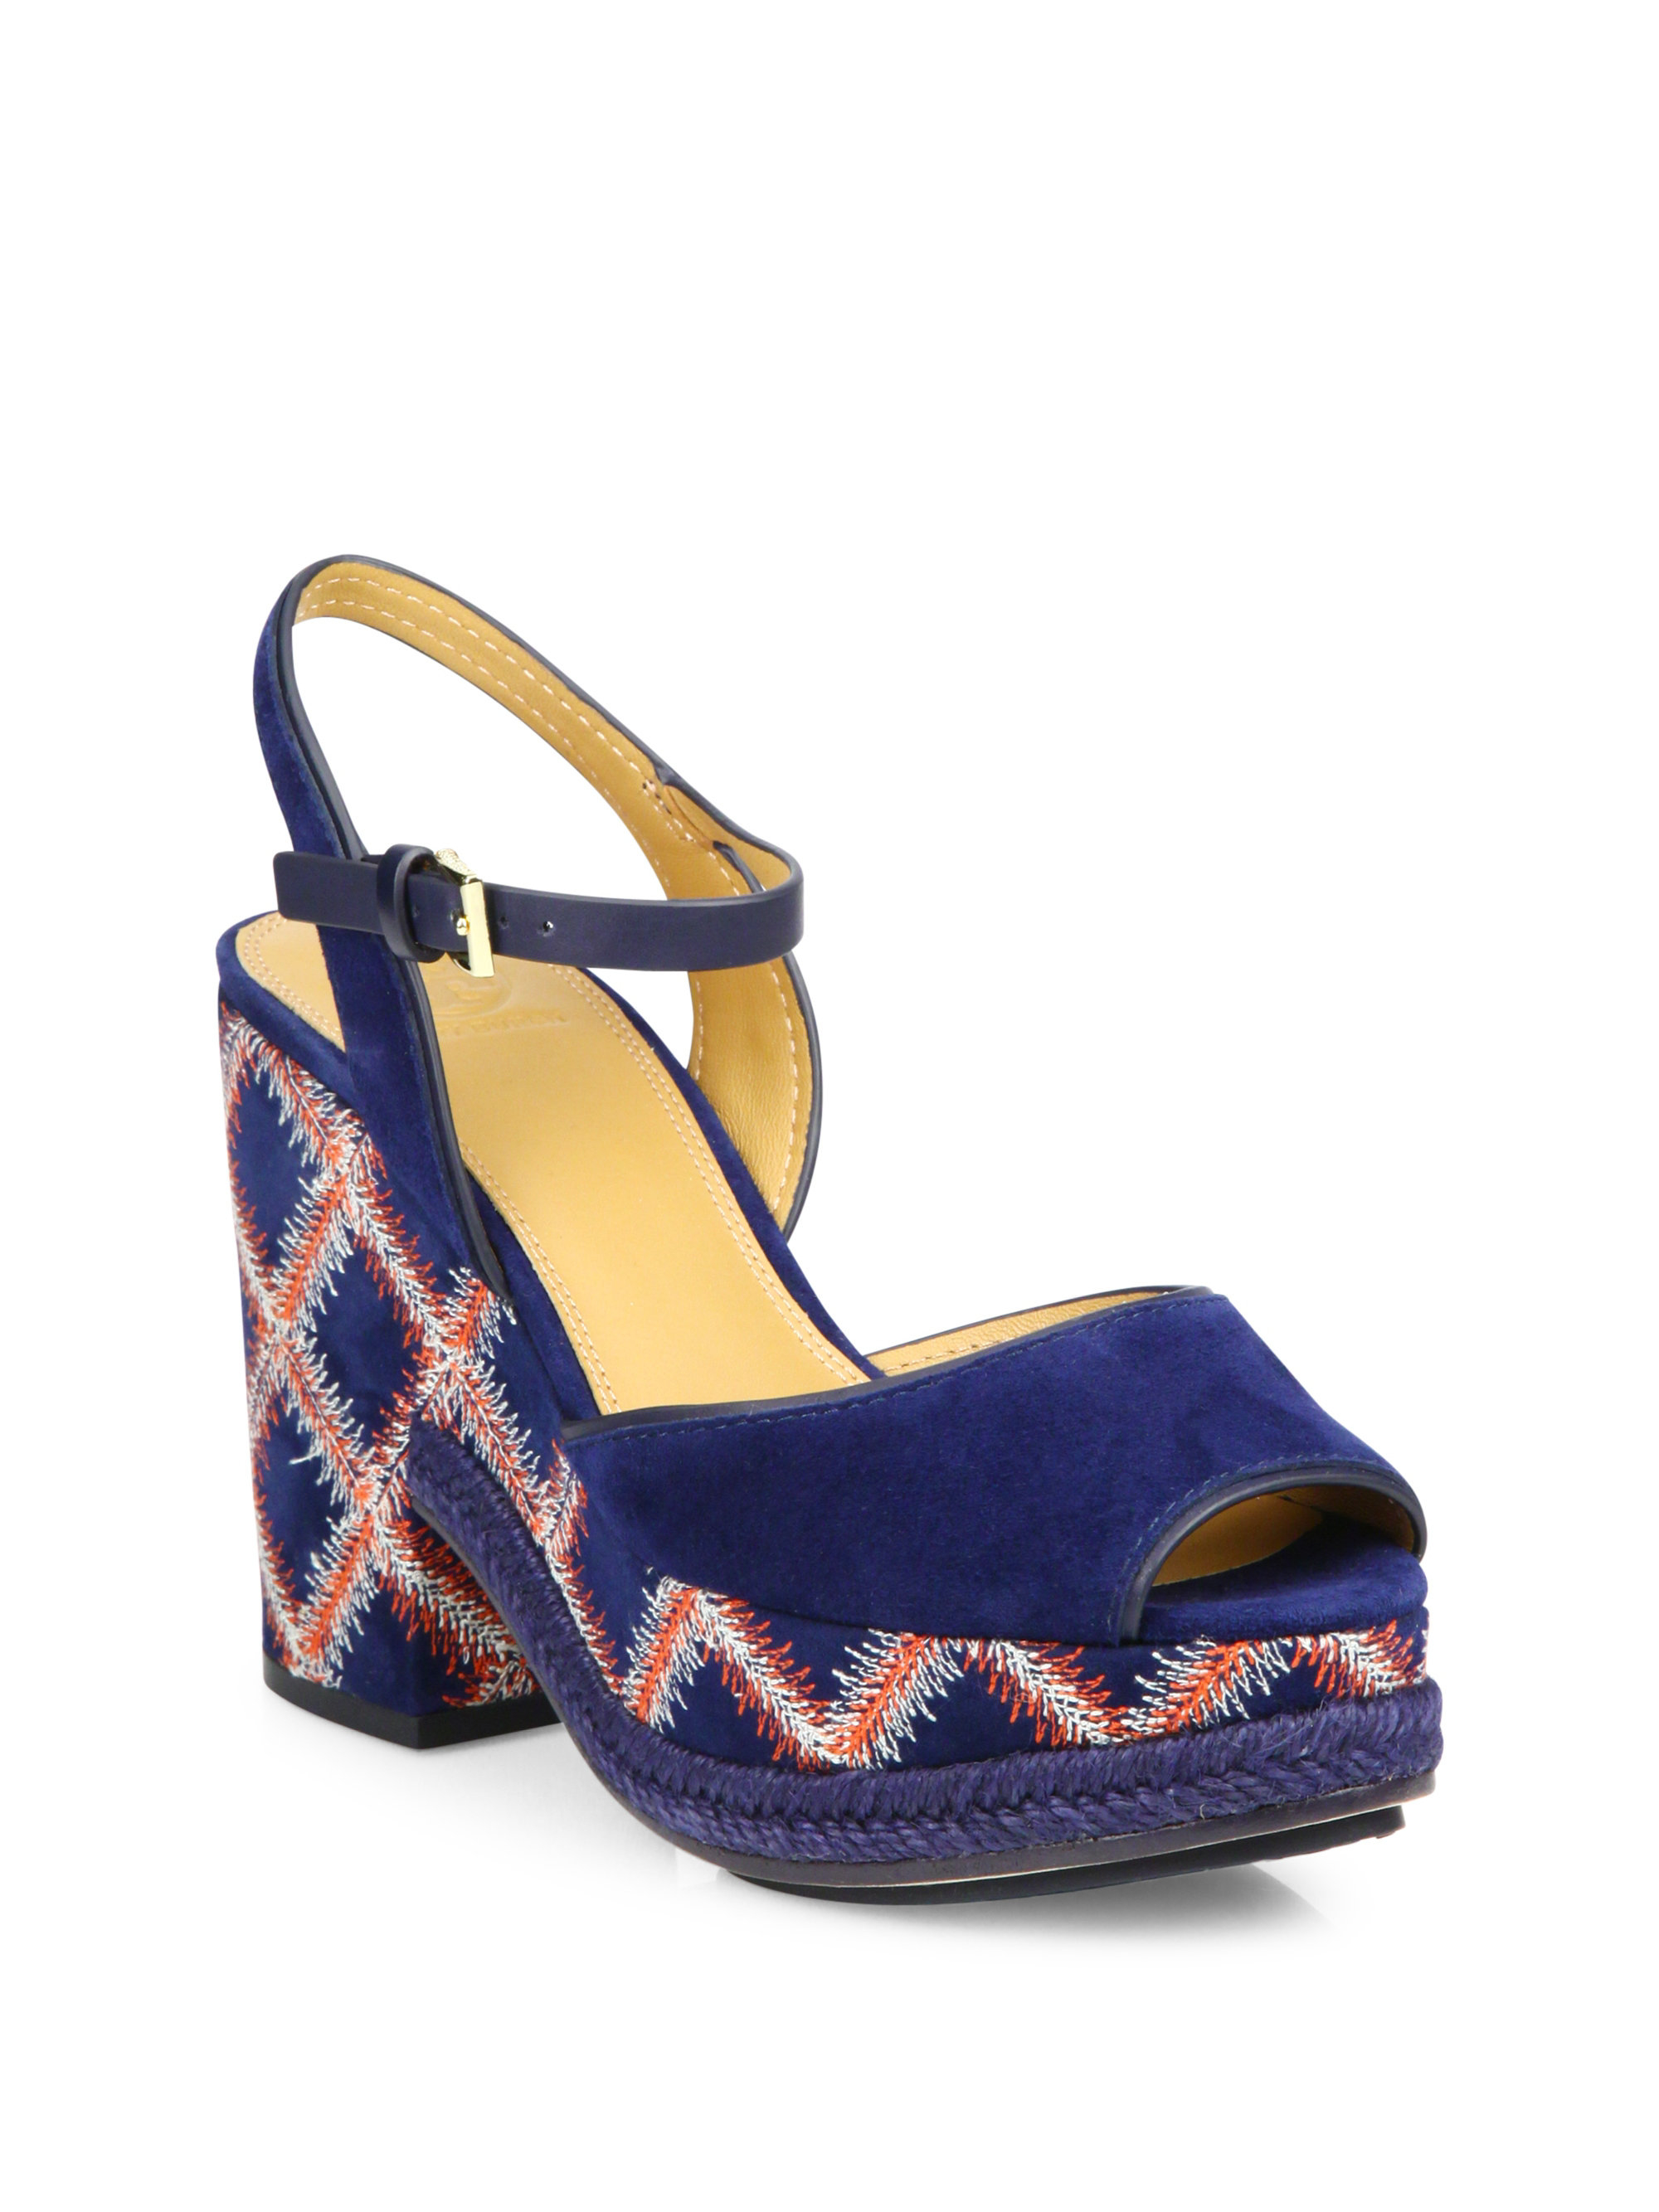 Tory Burch Trinity Embroidered Suede Wedge Sandals In Blue